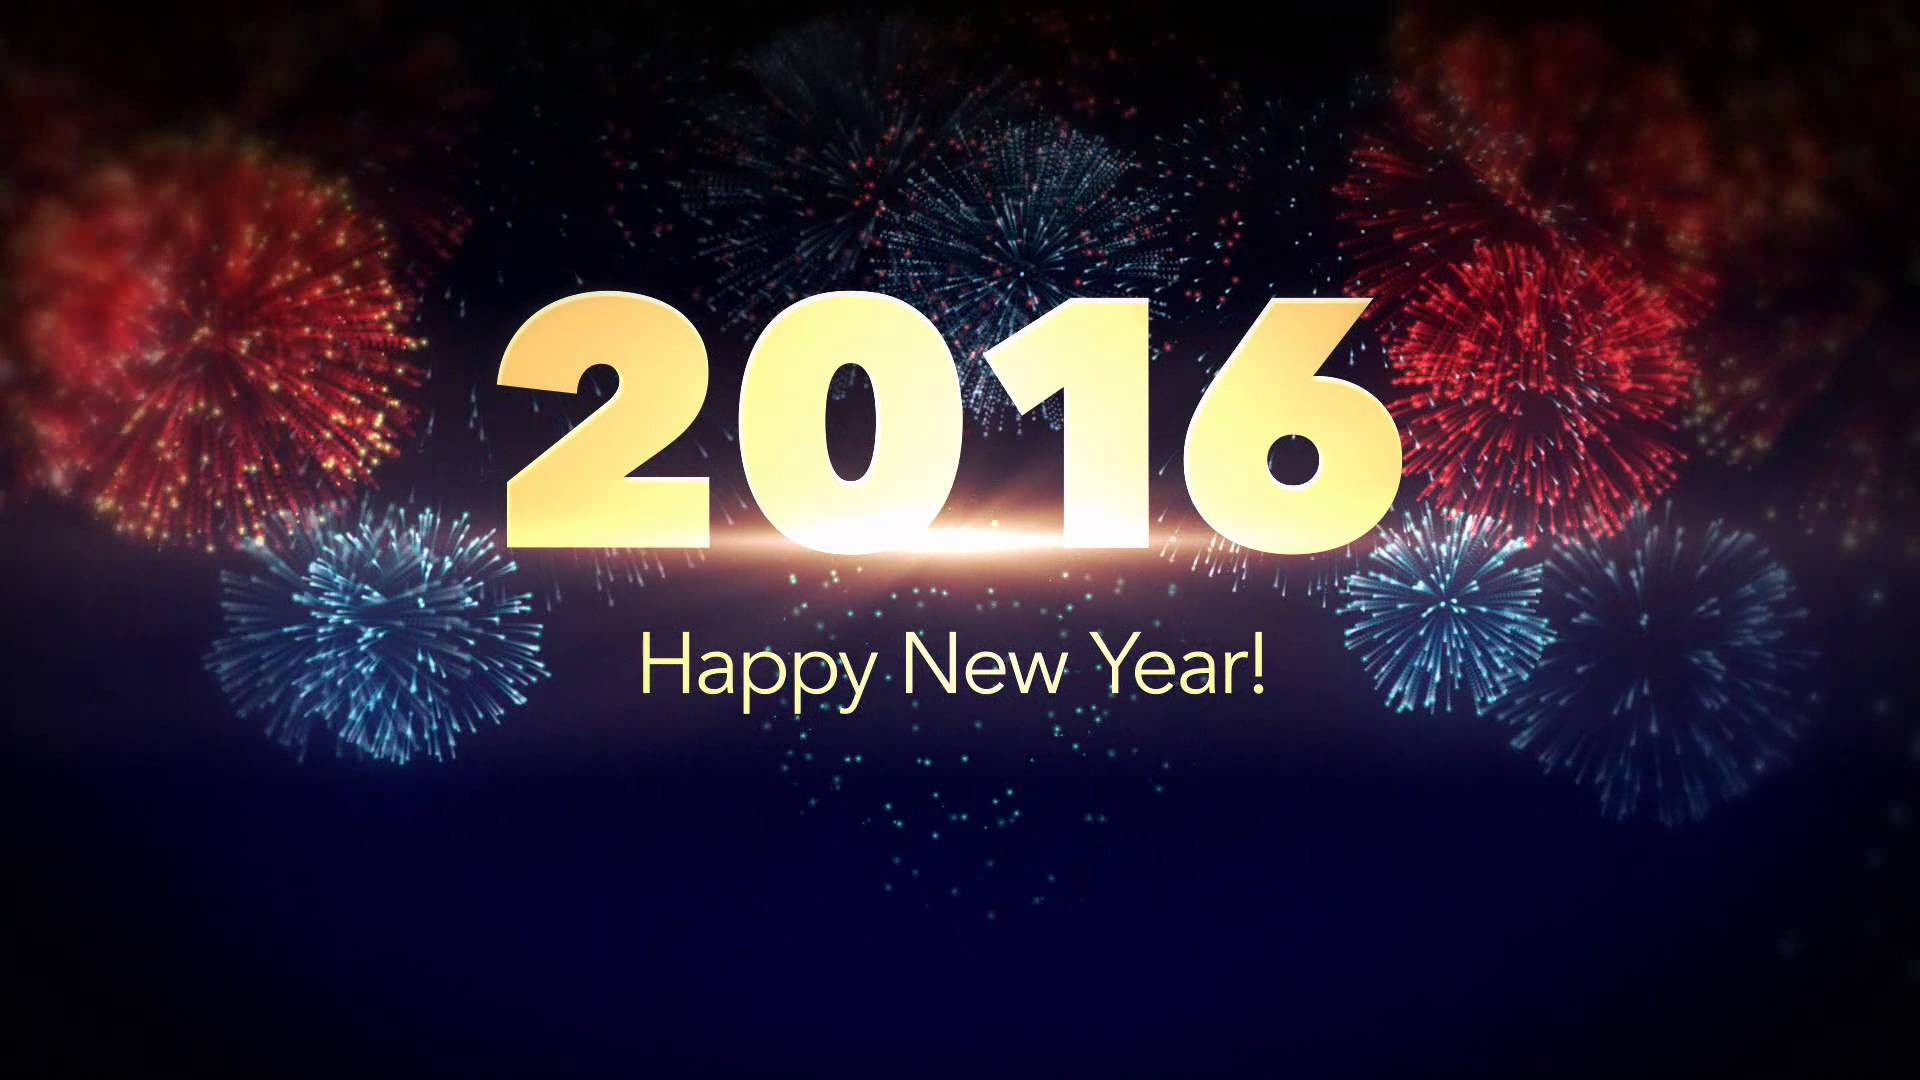 nations welcome 2016 with dazzling fireworks kids news article